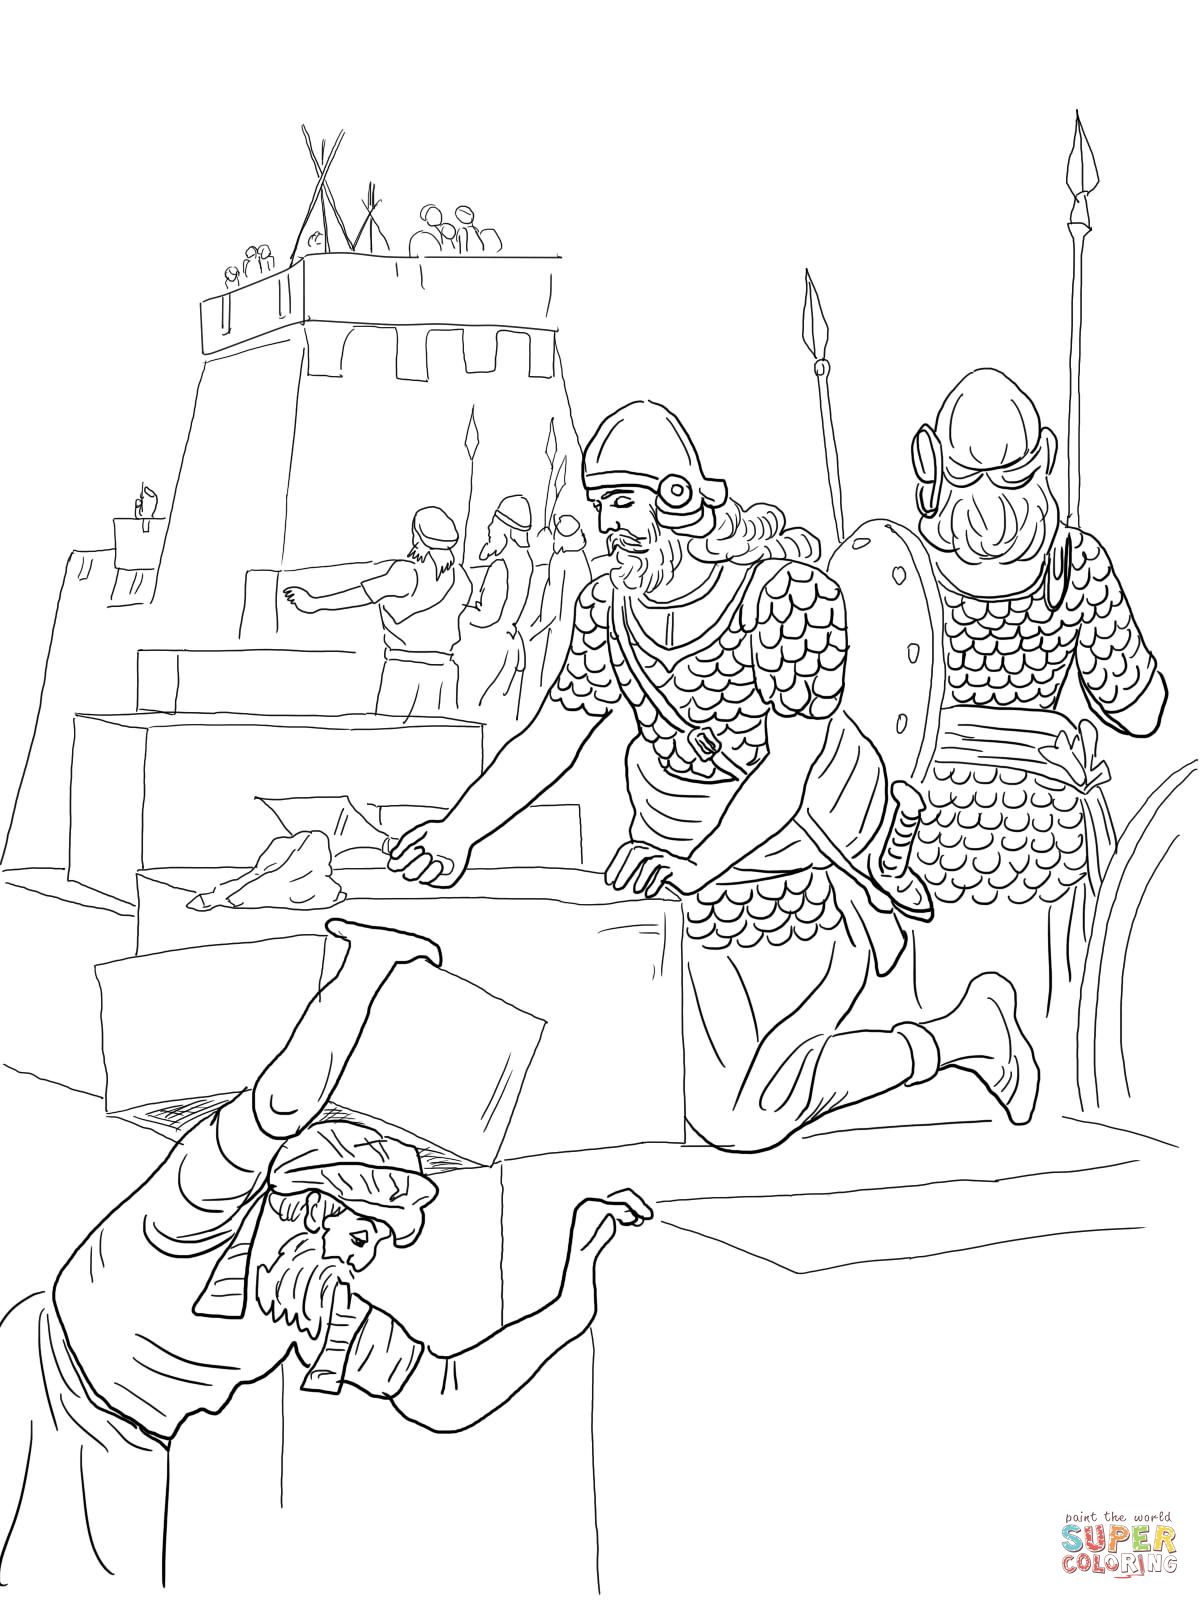 Nehemiah Coloring Pages | KNIT | Pinterest